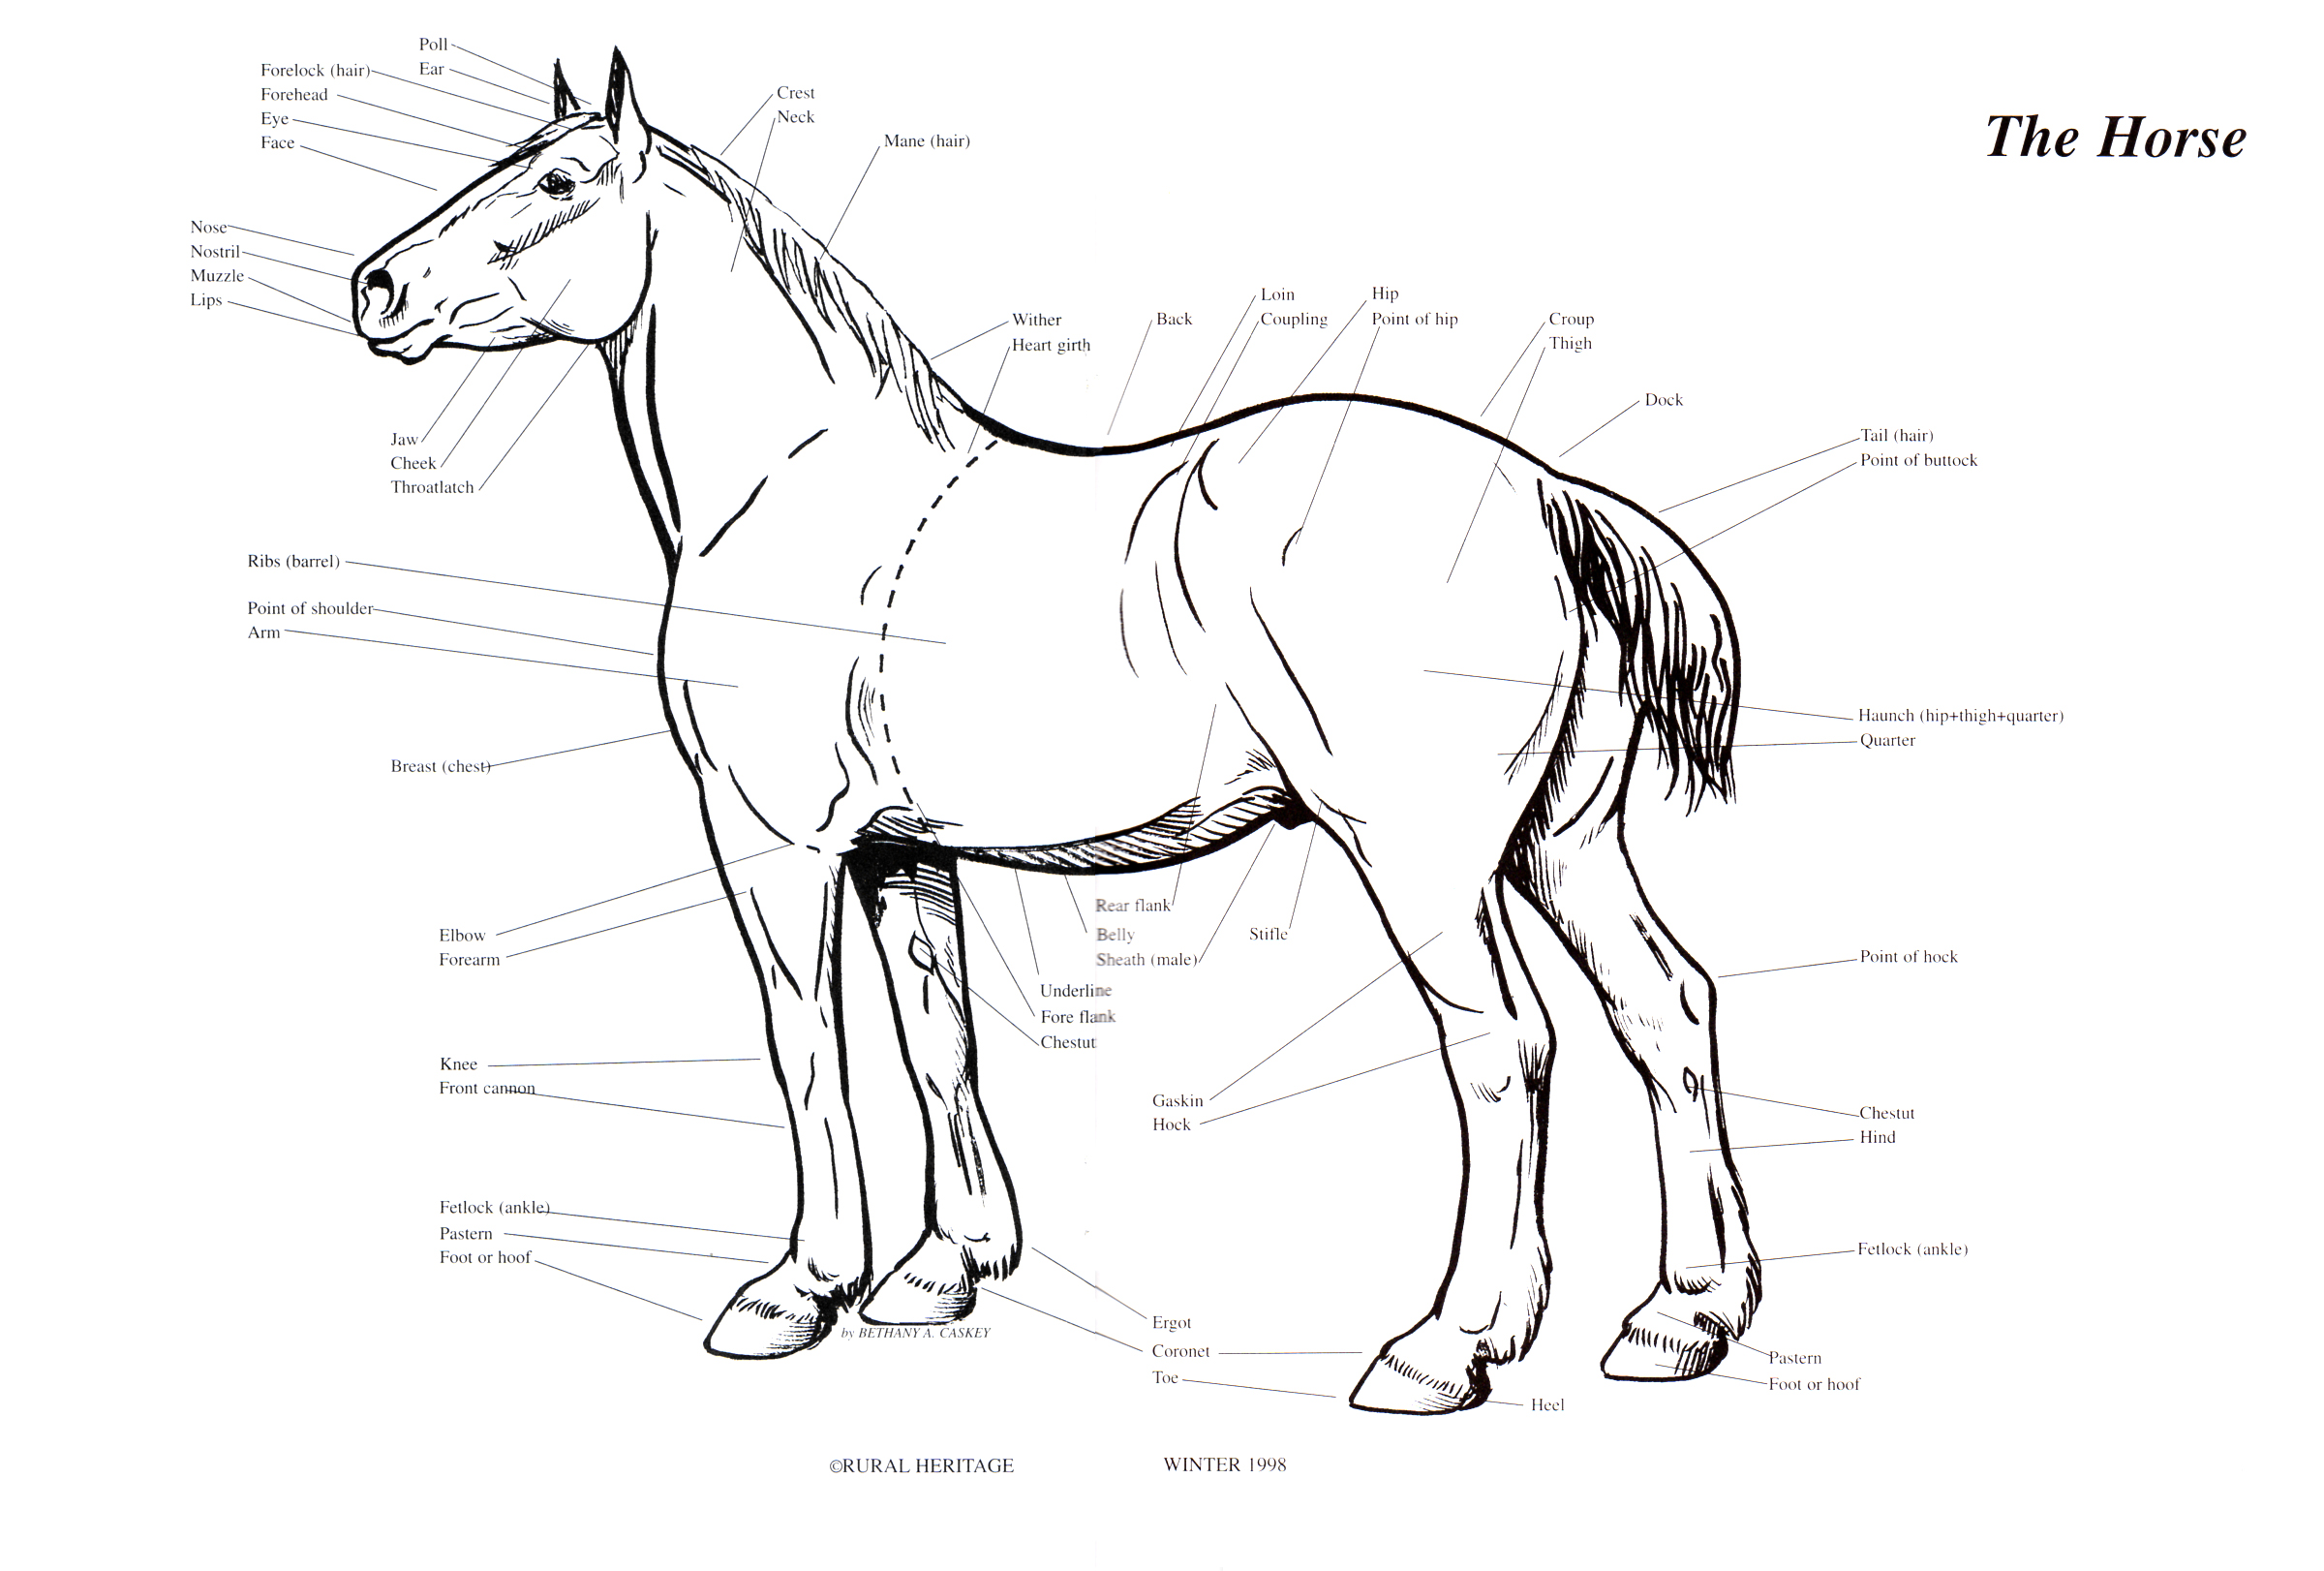 Rural Heritage Horse Body Illustration